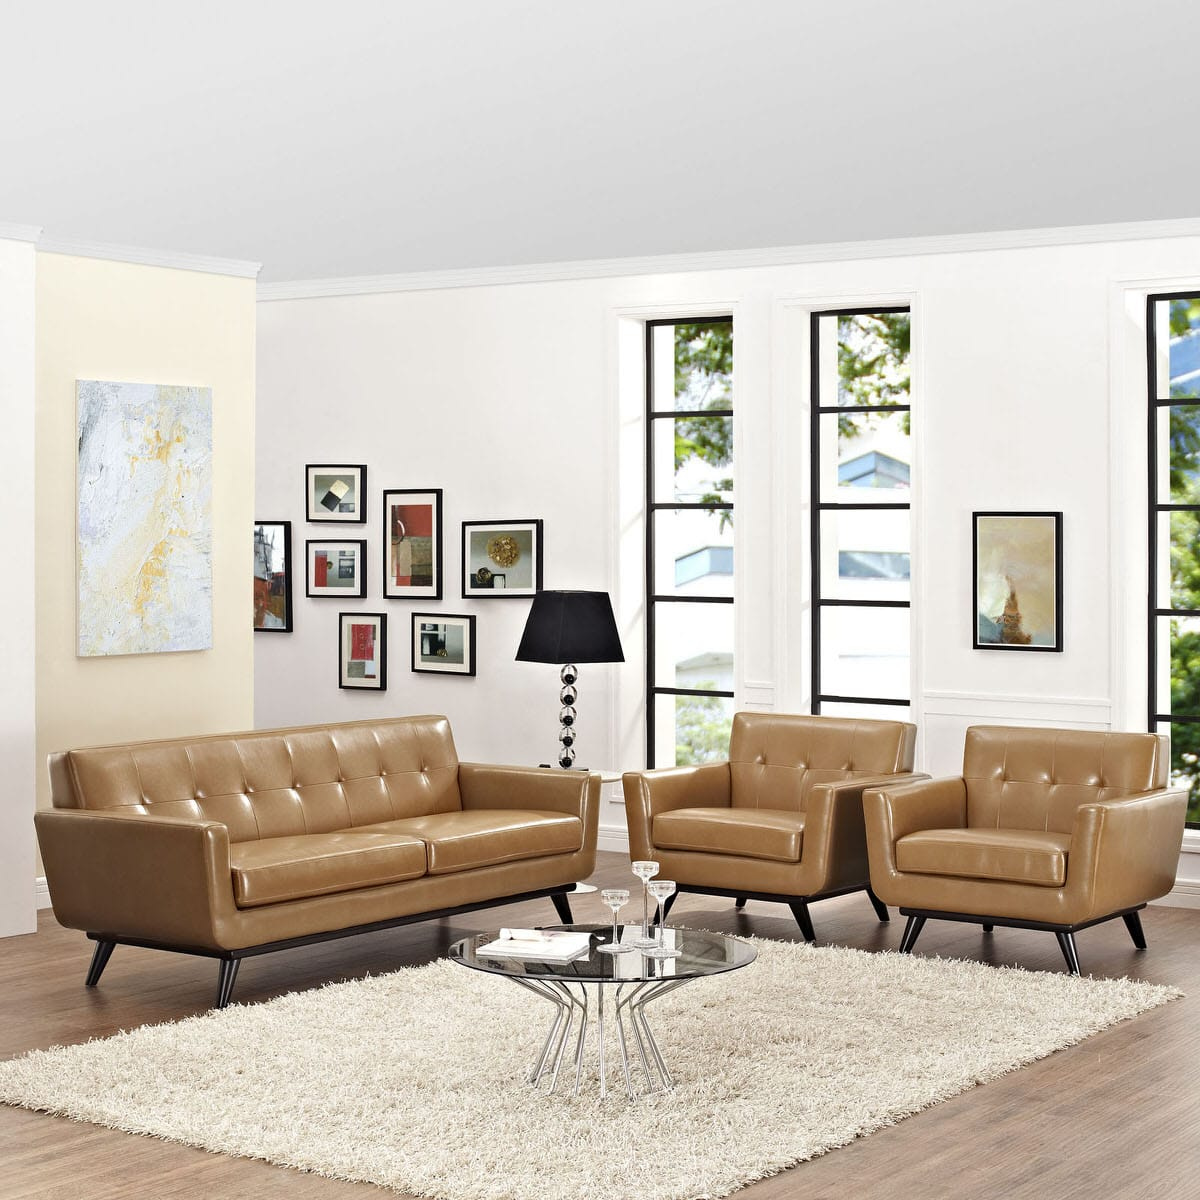 Engage 3 Piece Leather Living Room Set Tan by Modway